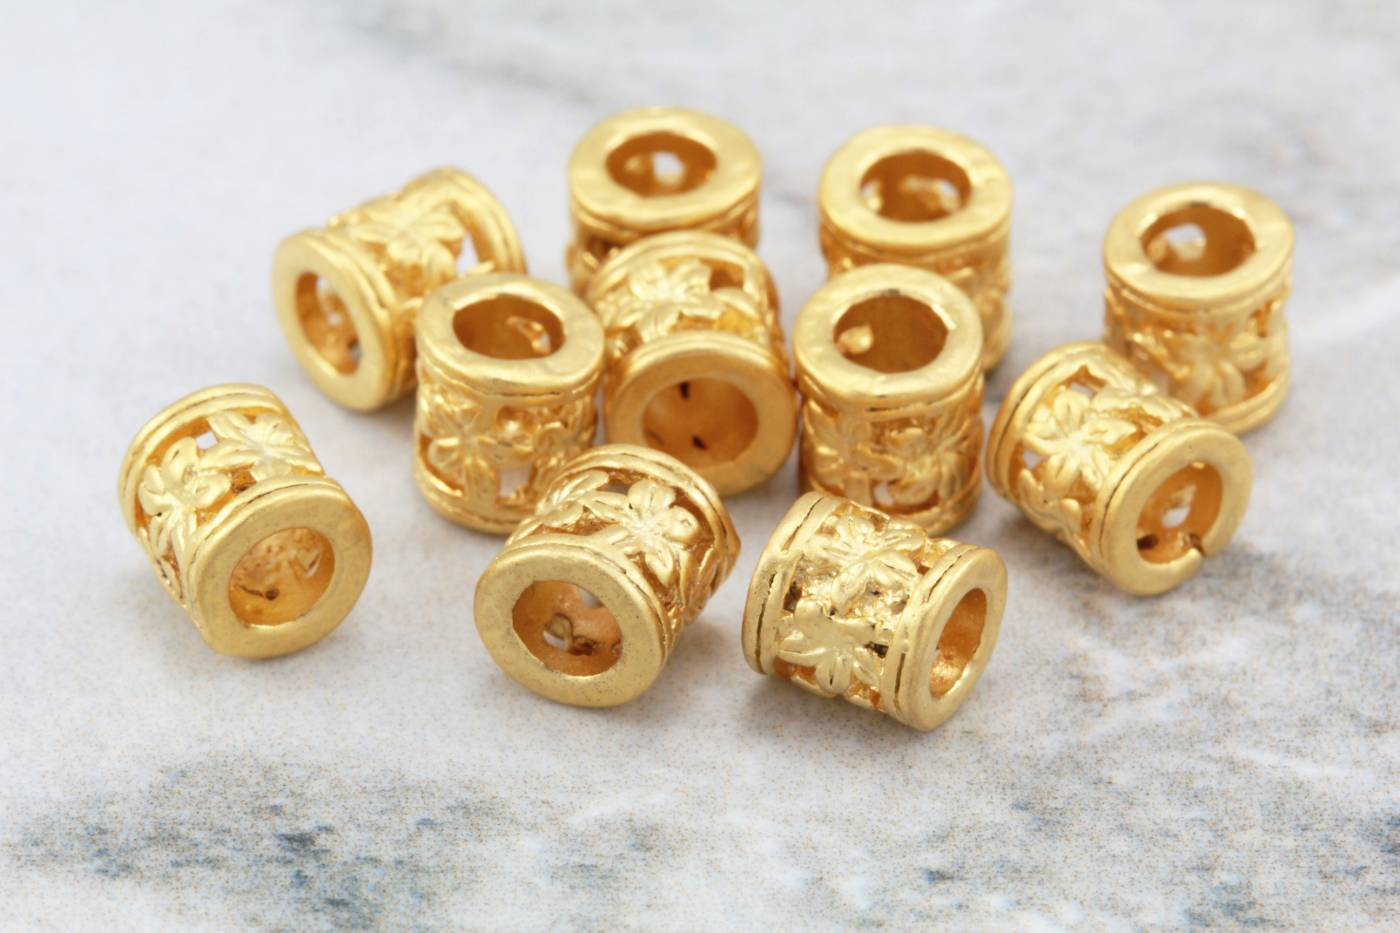 6mm-gold-tube-beads-with-flower-pattern.jpg